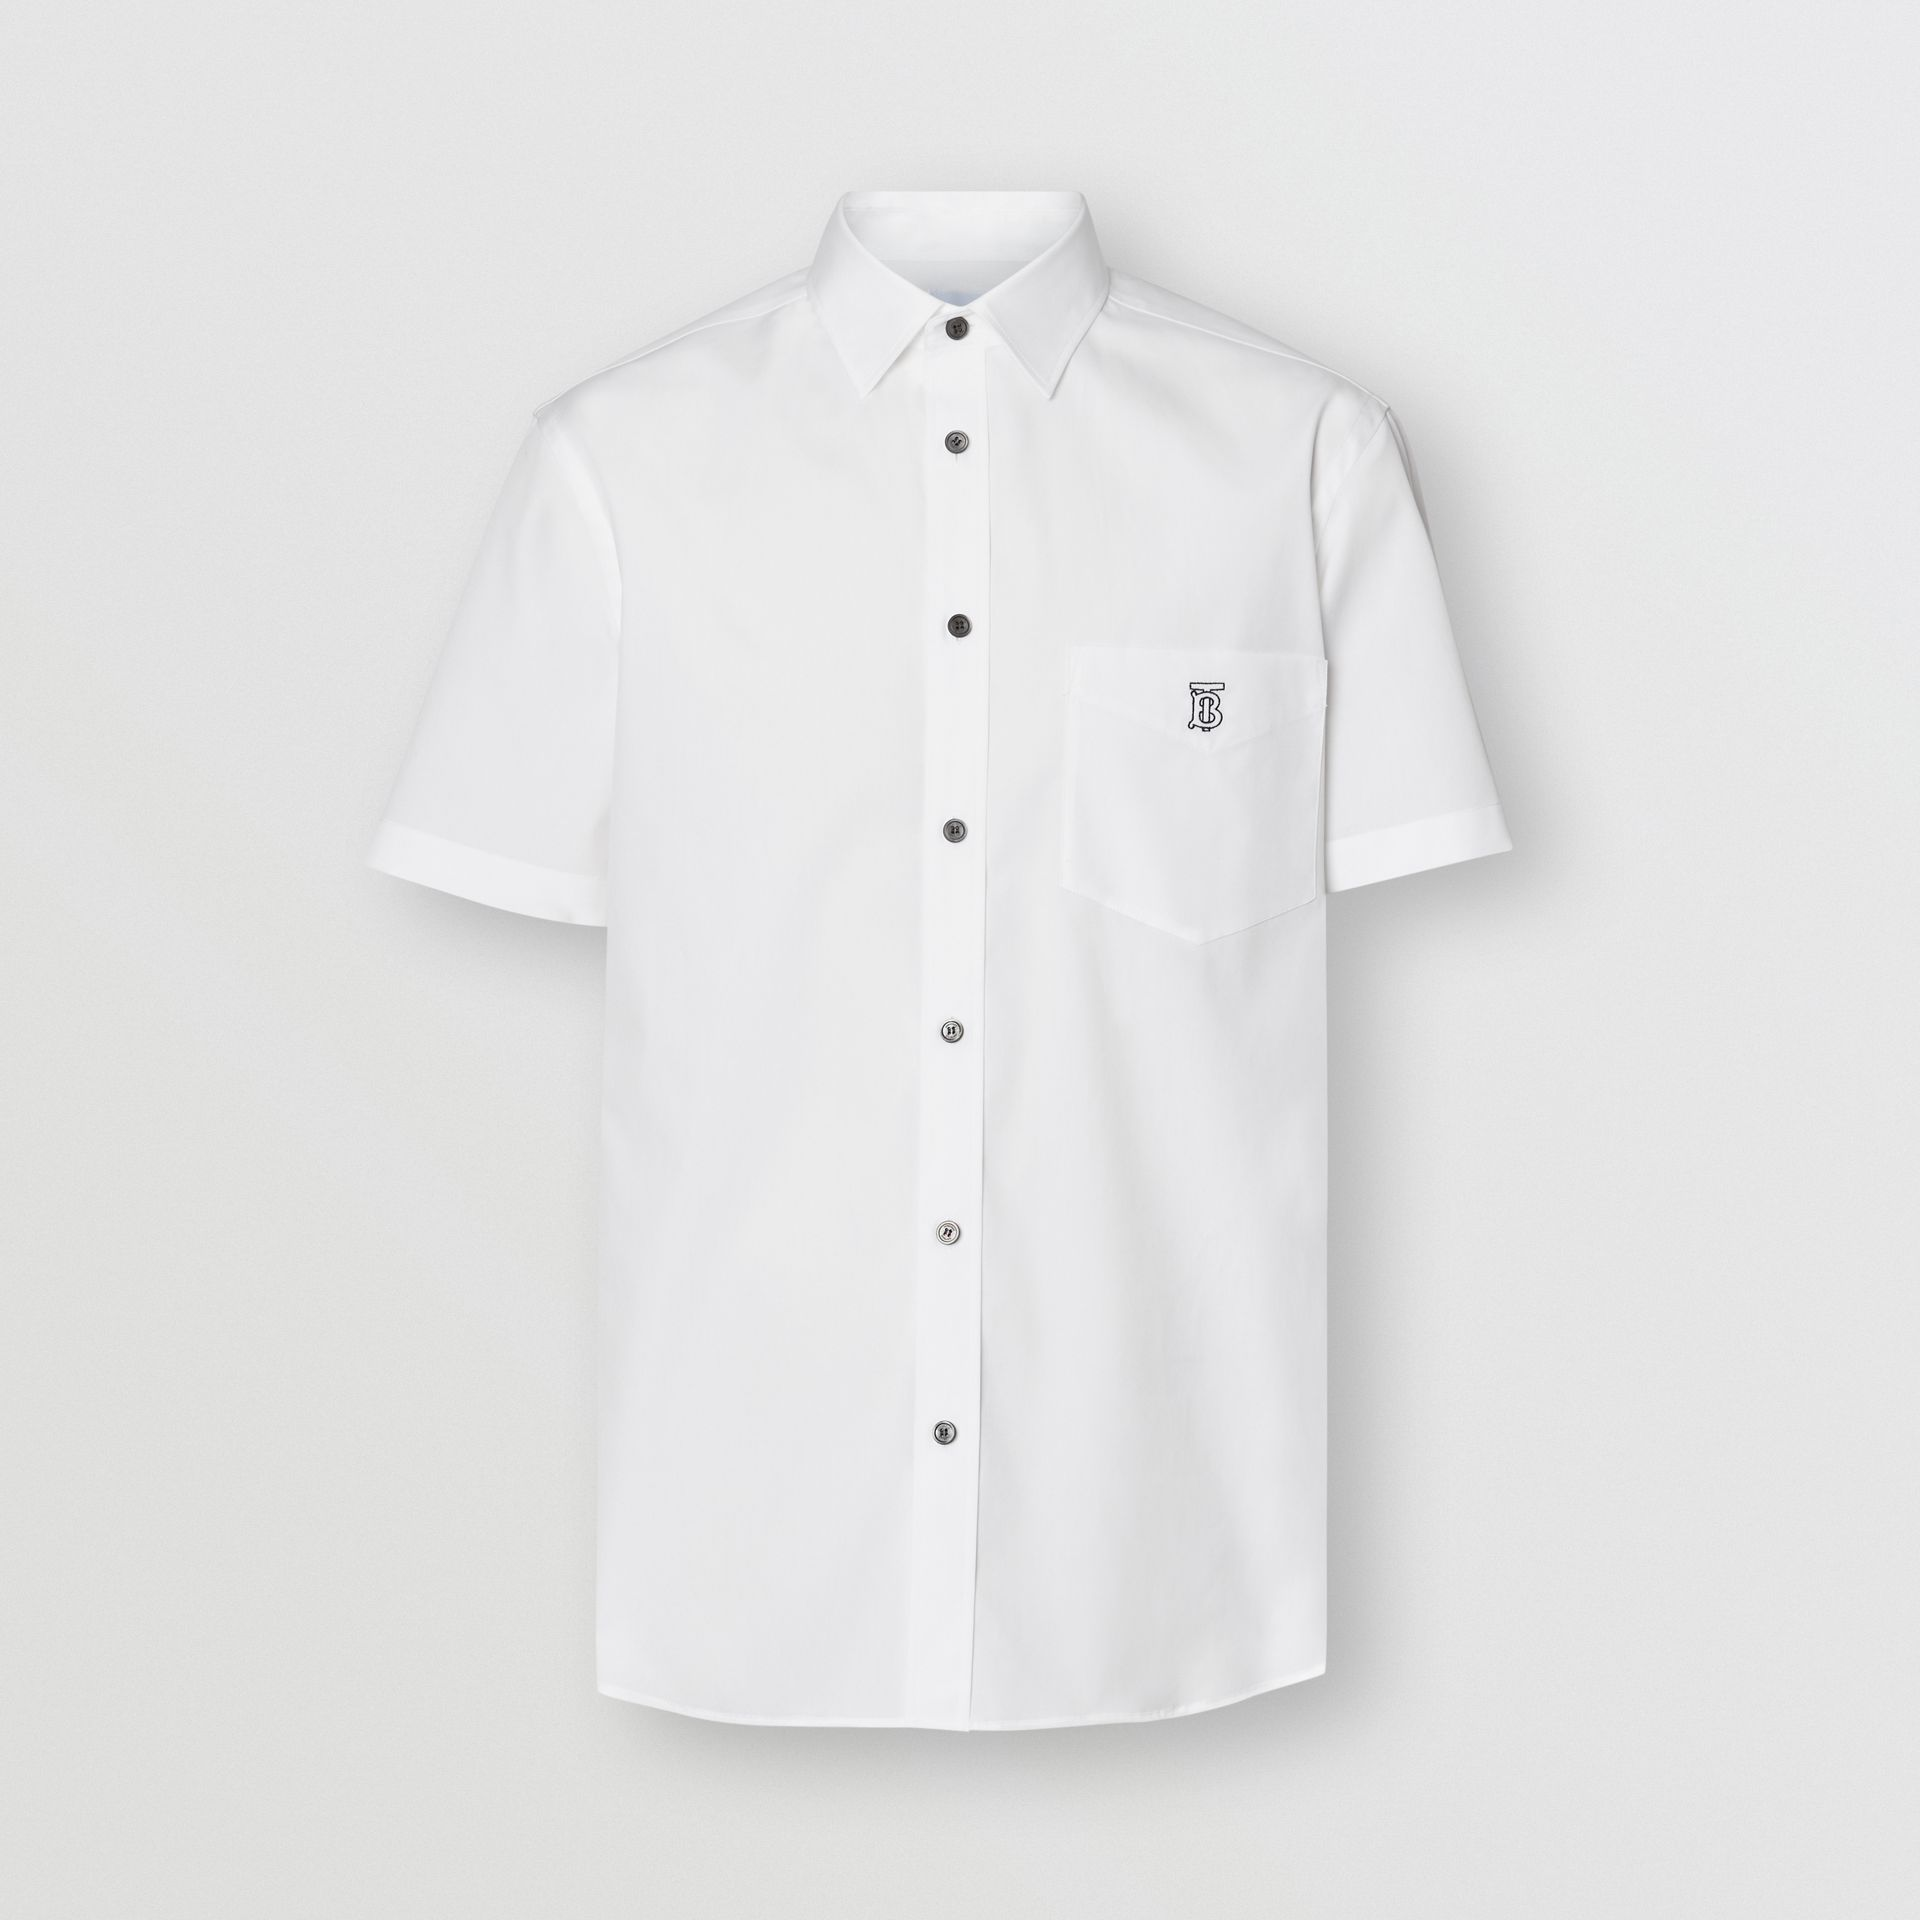 Short-sleeve Monogram Motif Stretch Cotton Shirt in White | Burberry - gallery image 3